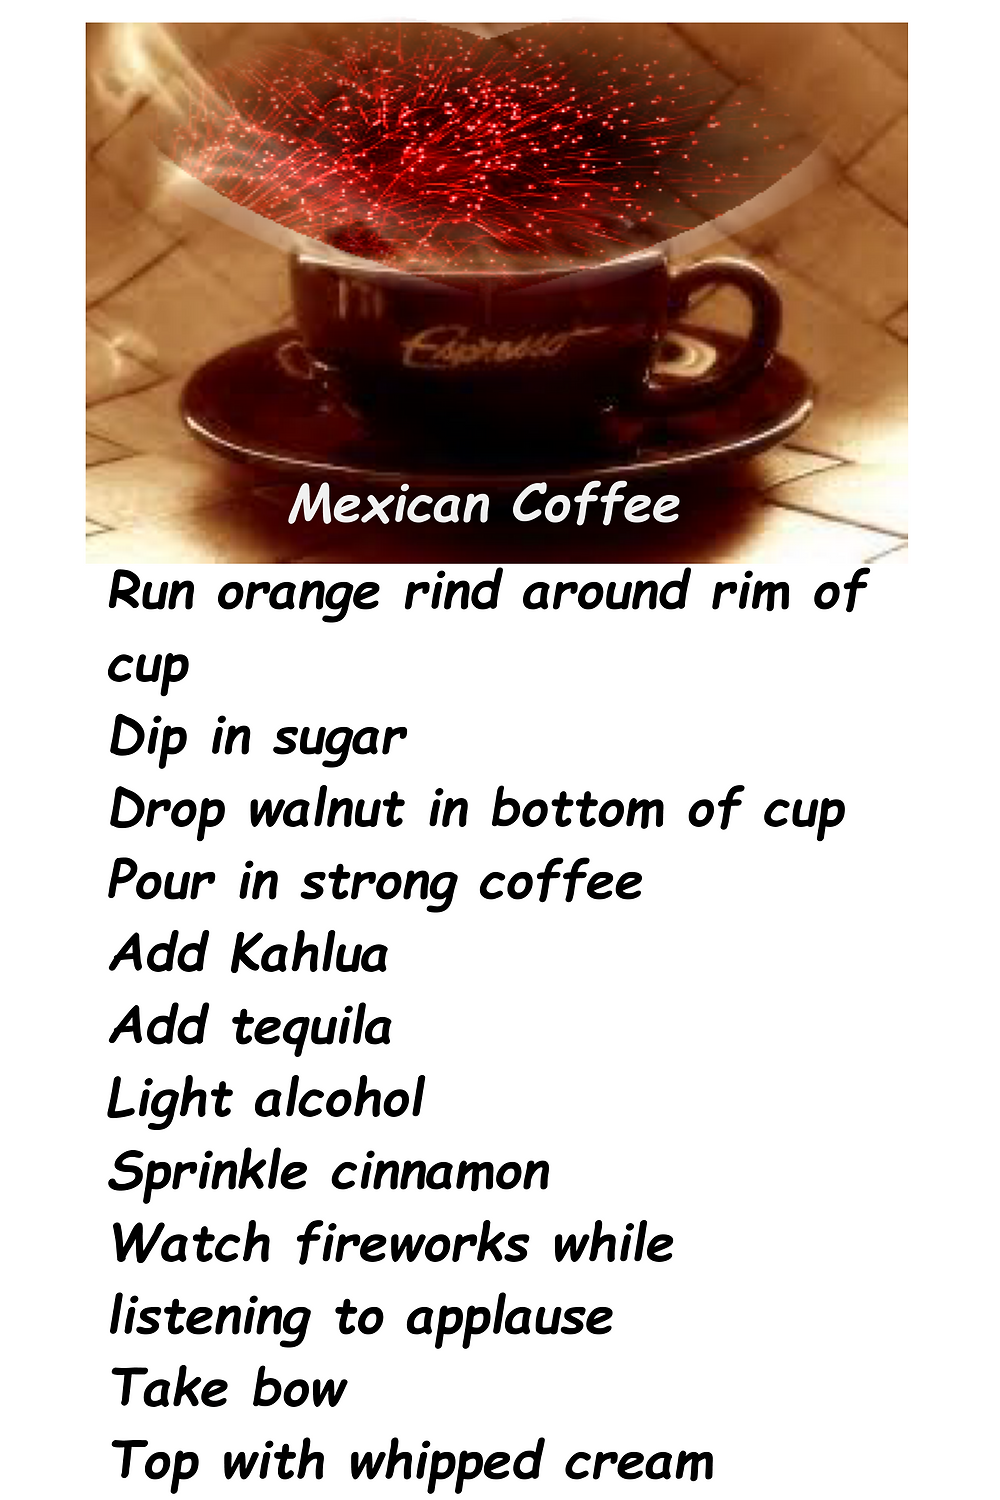 Mexican Coffee Recipe.png